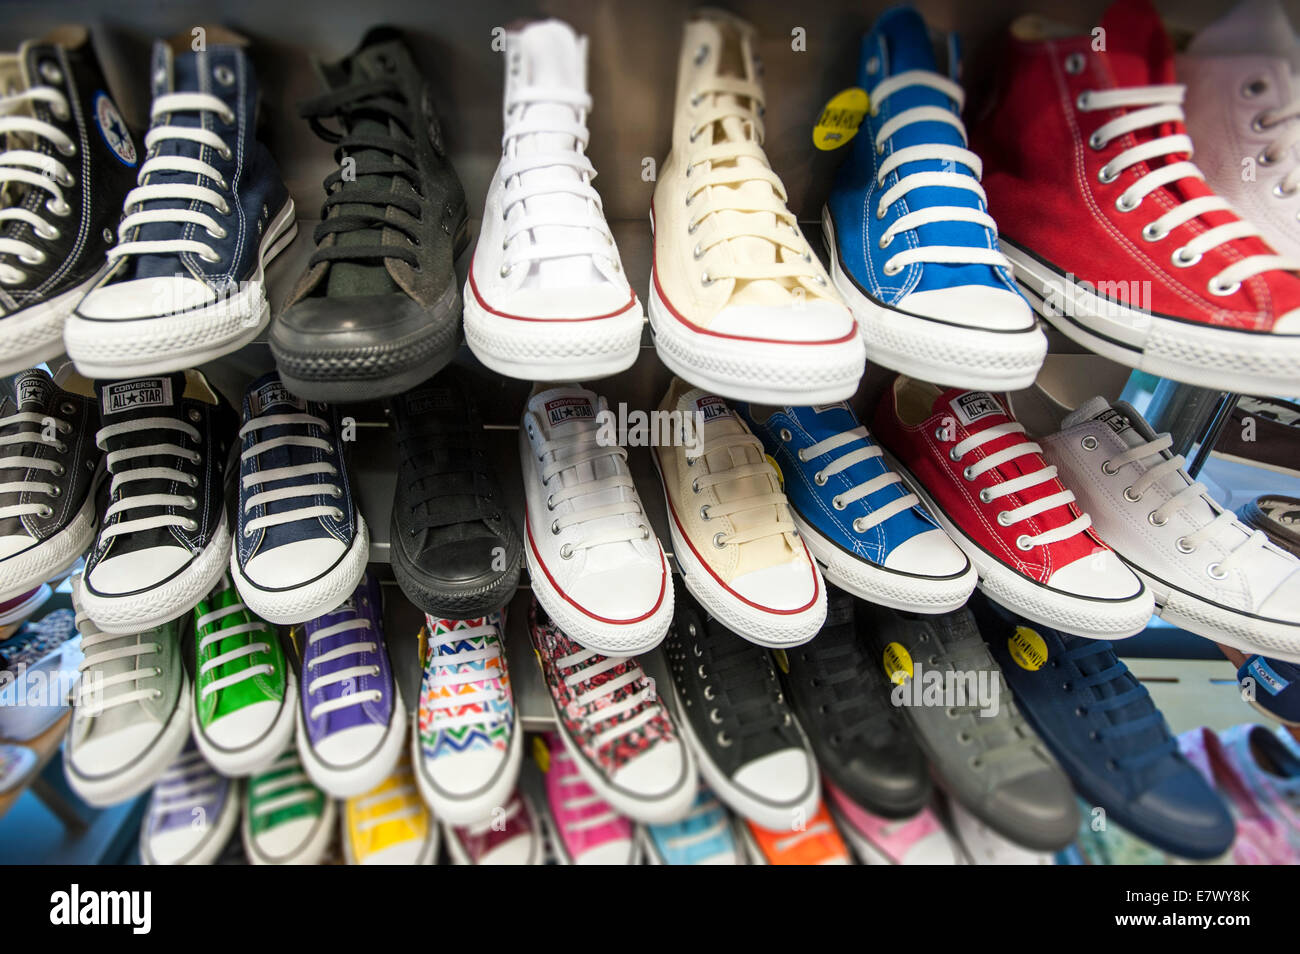 Converse All Star - Stock Image